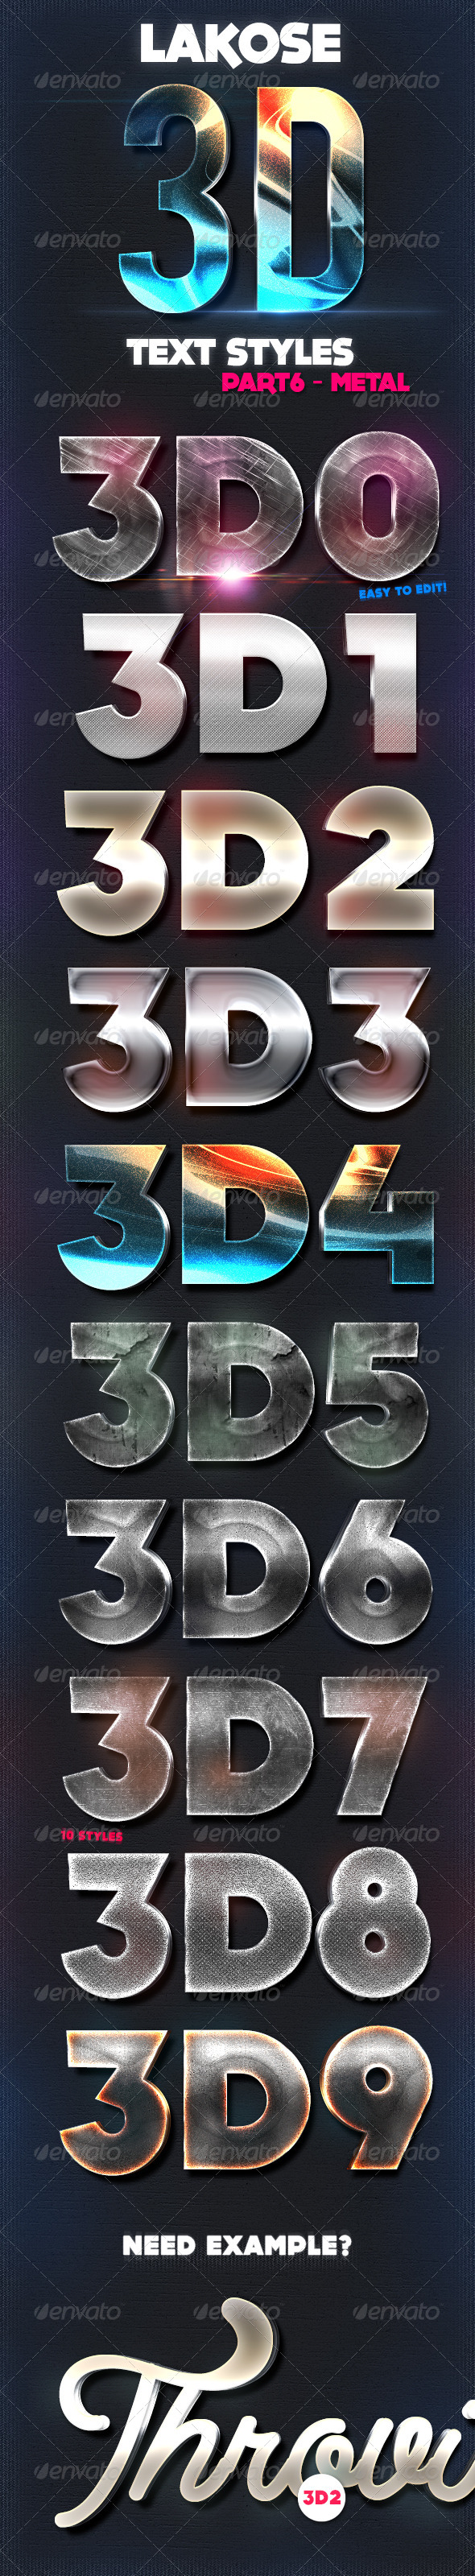 GraphicRiver Lakose 3D Text Styles Part 6 8655334